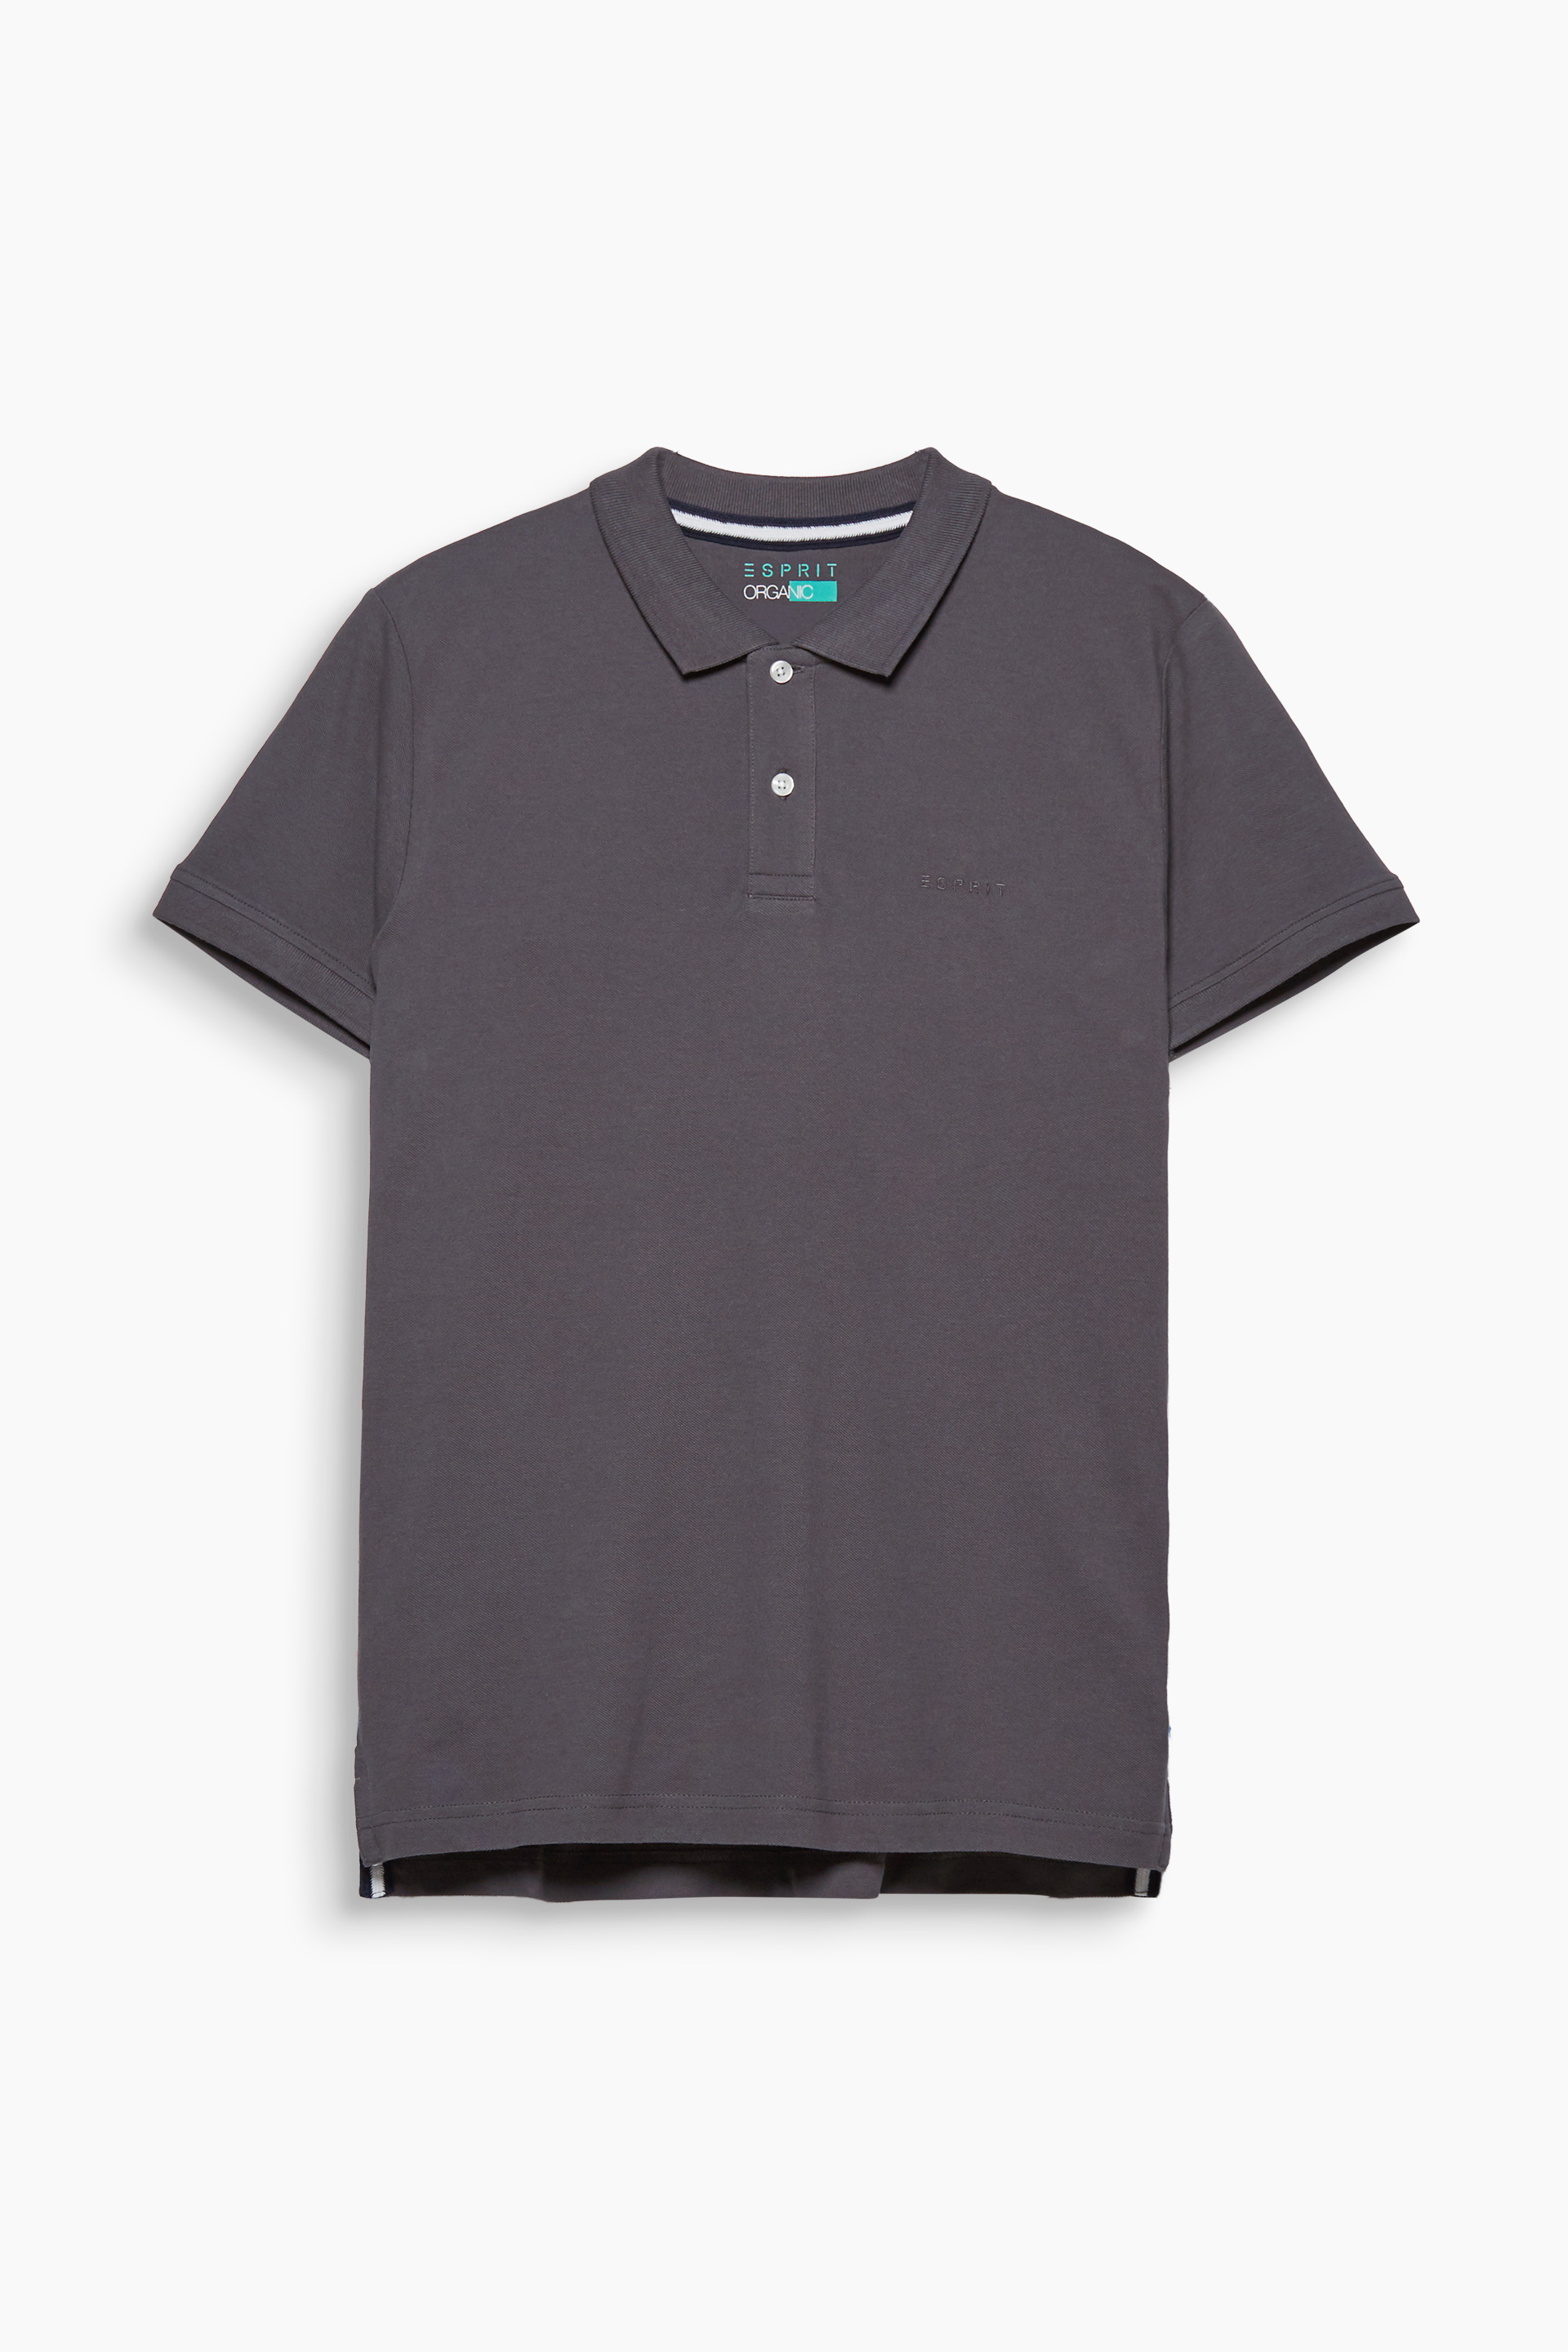 Esprit Dark Grey 020 Piqué polo shirt in organic cotton